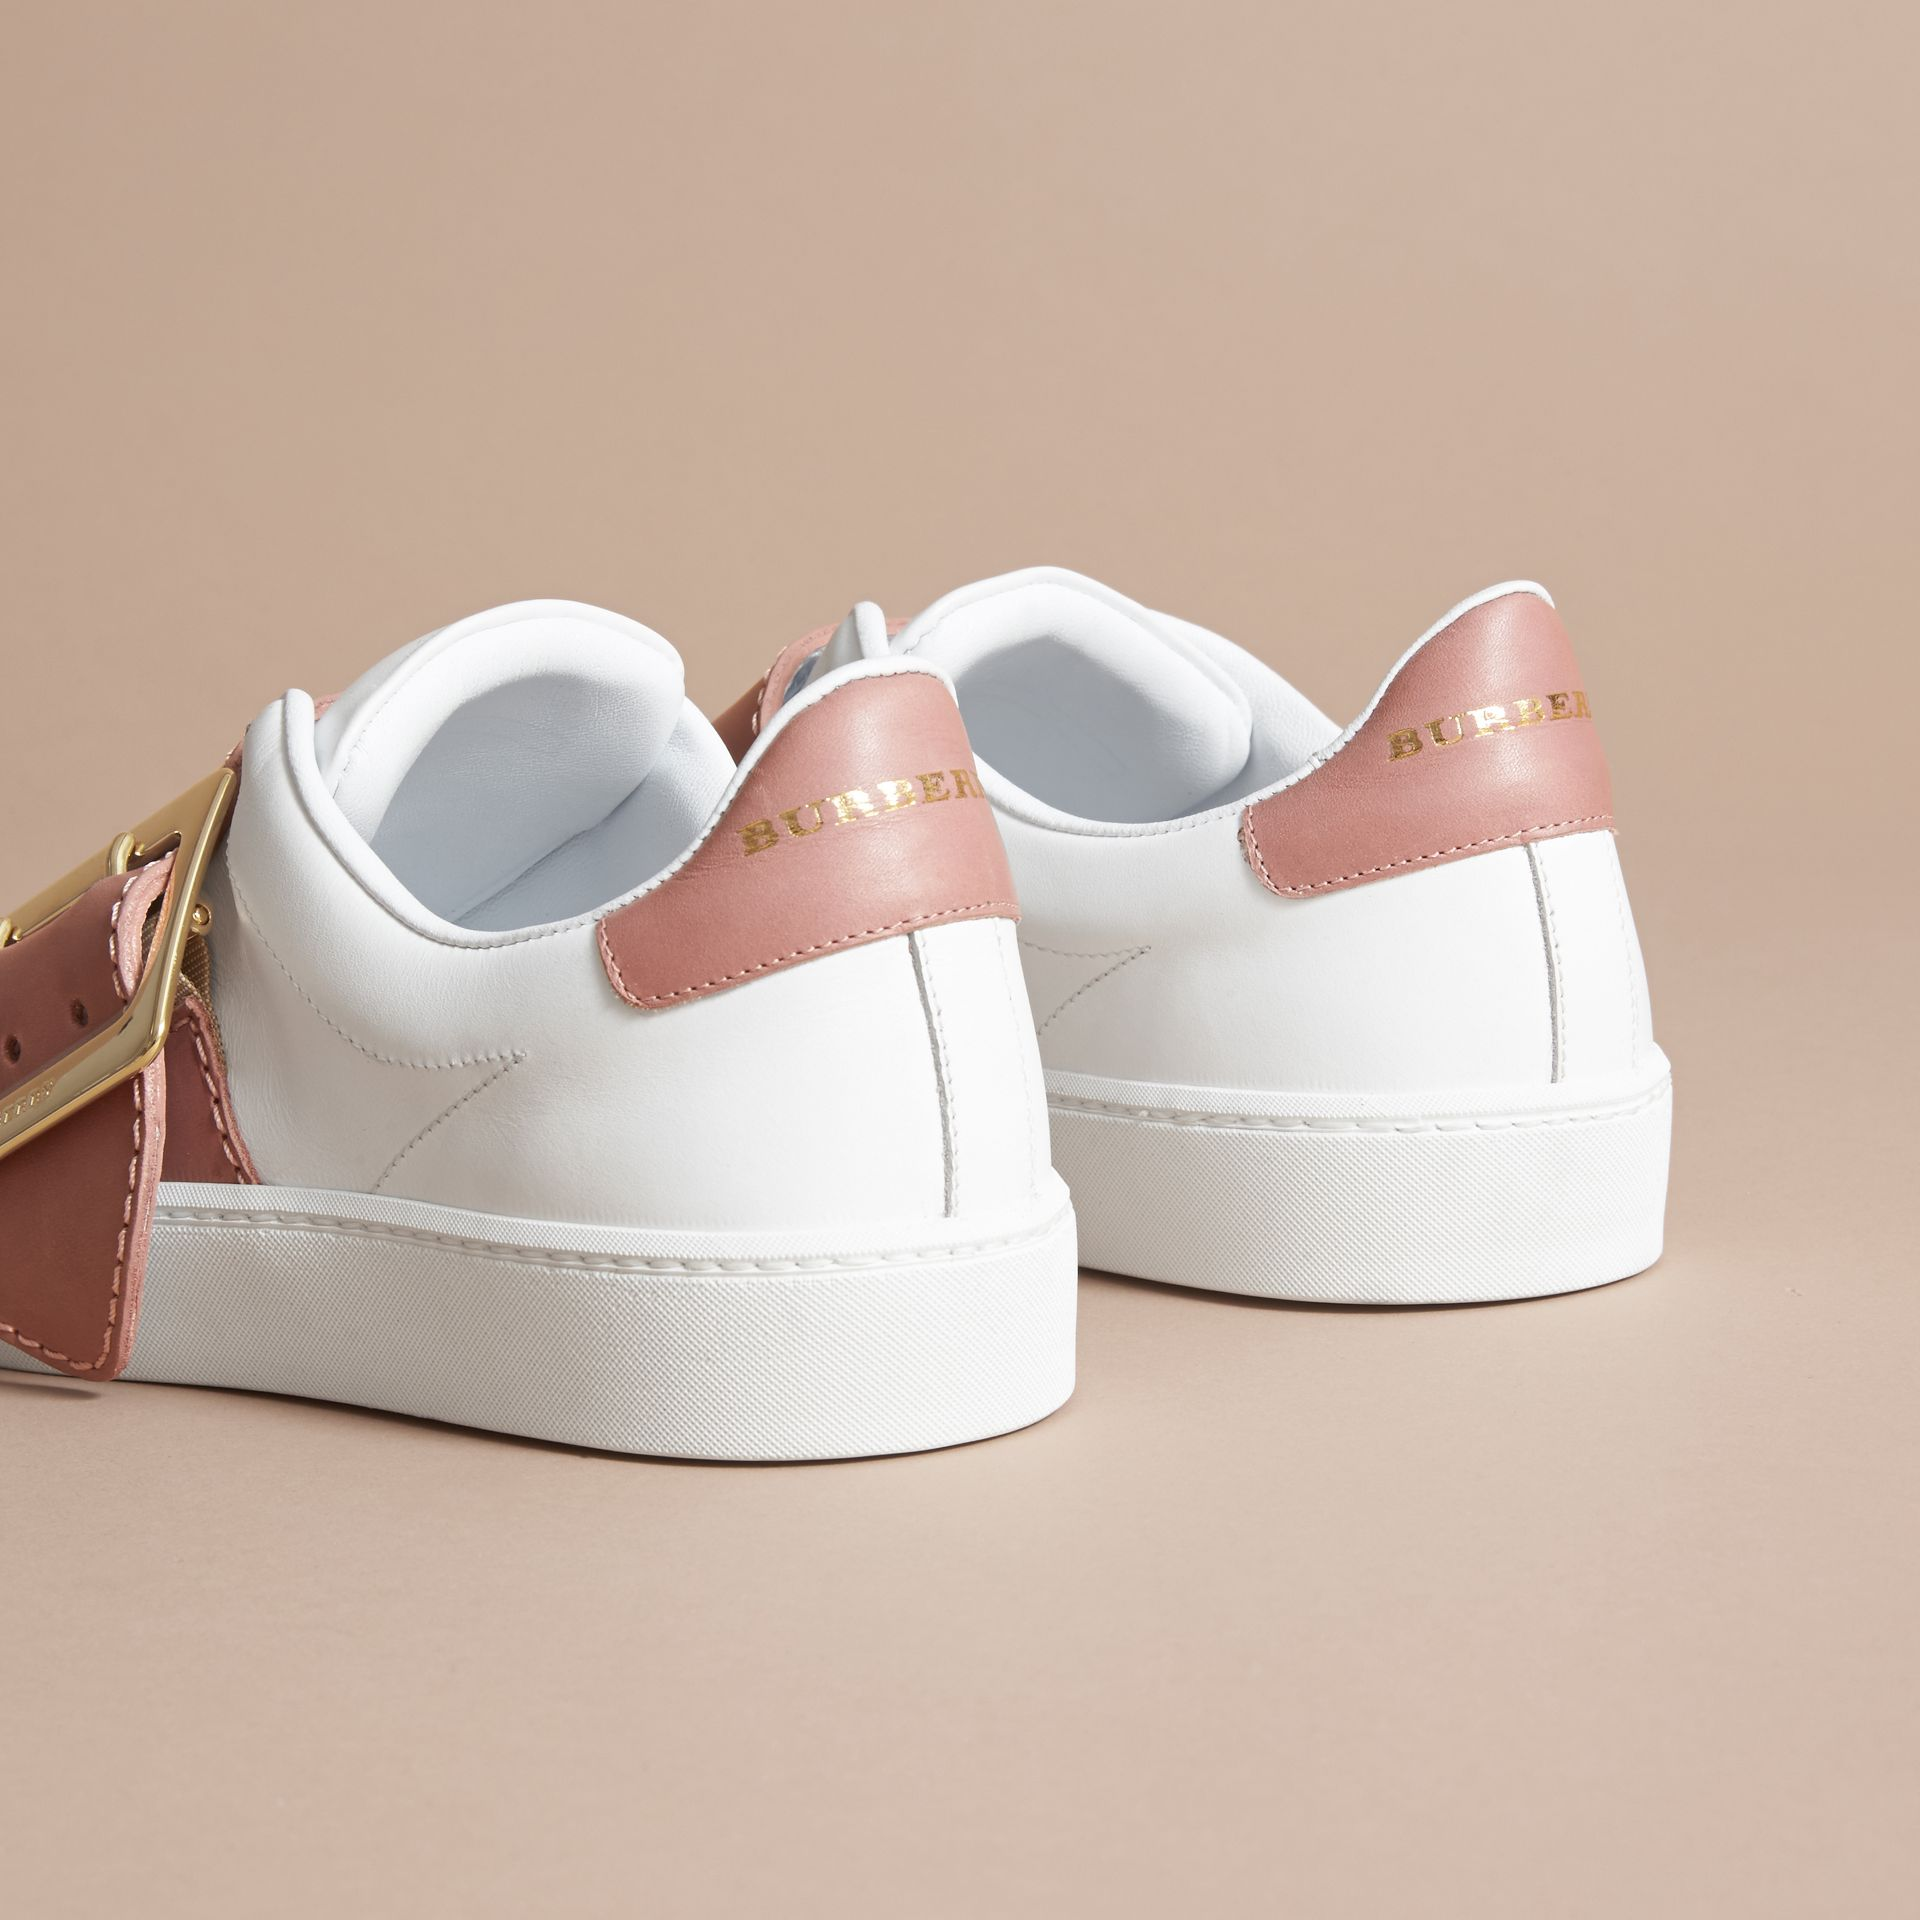 Buckle Detail Leather Trainers in Pink Apricot - Women | Burberry - gallery image 4